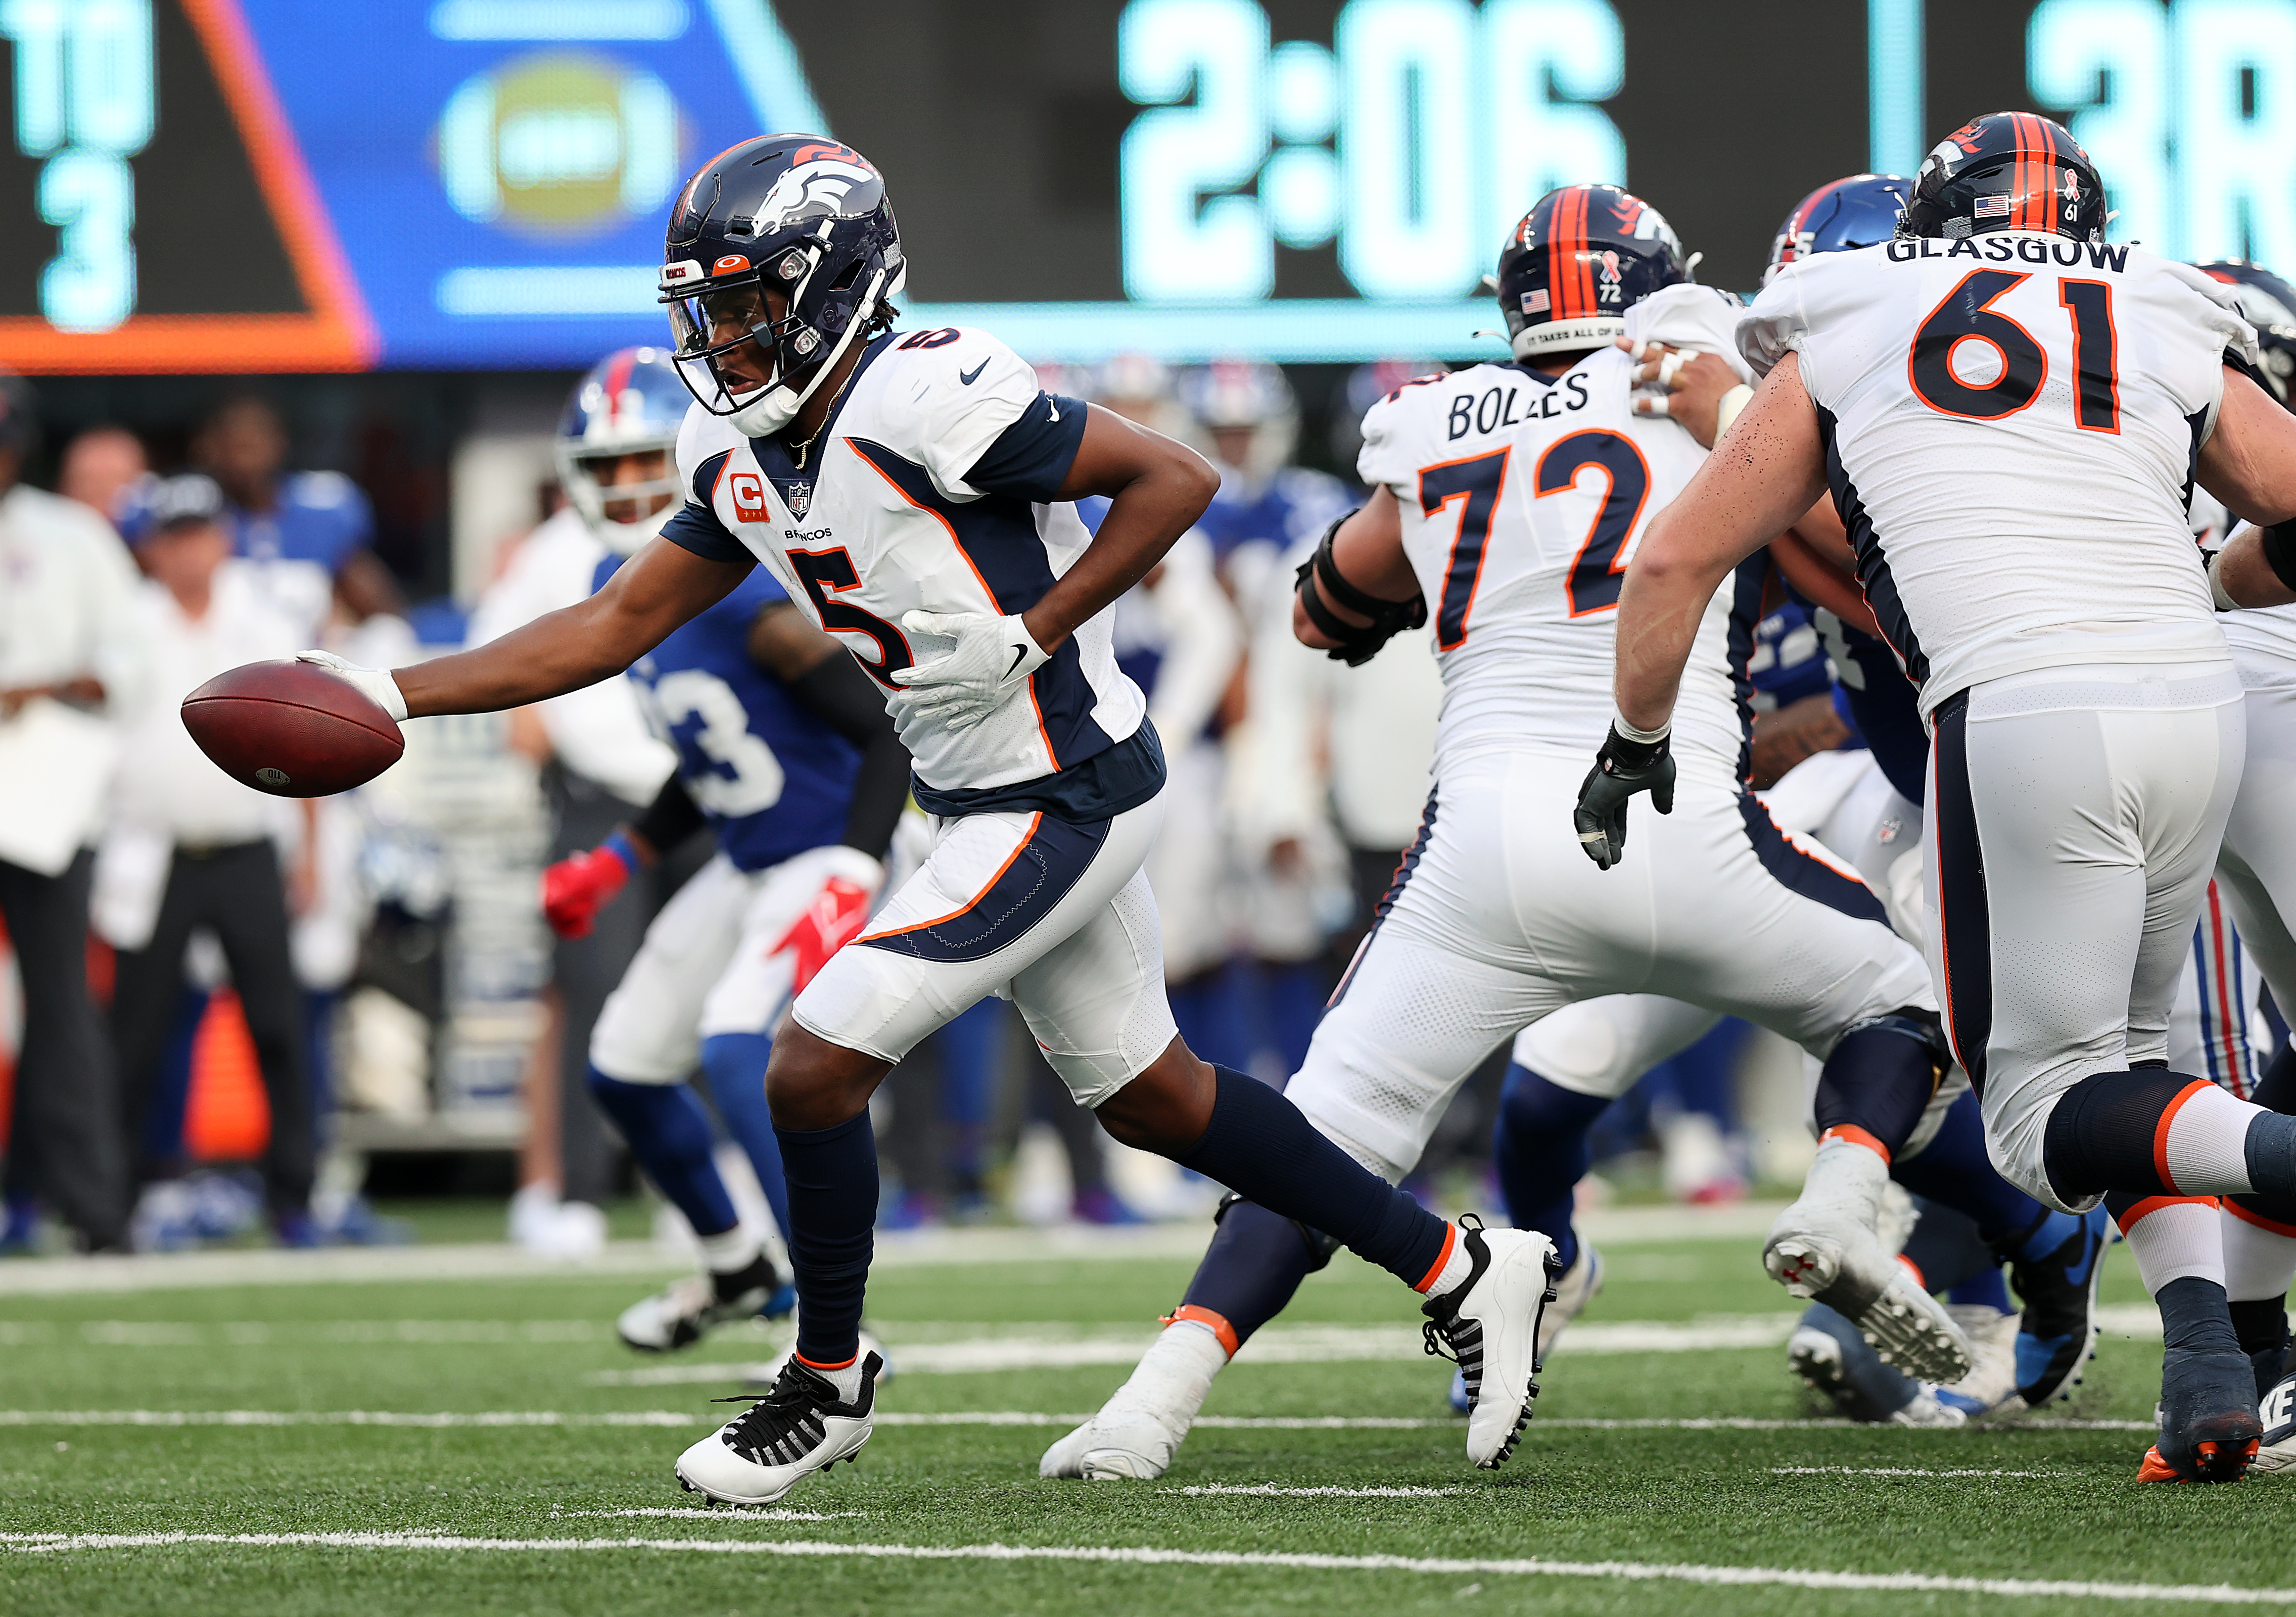 Teddy Bridgewater #5 of the Denver Broncos hands the ball off against the New York Giants at MetLife Stadium on September 12, 2021 in East Rutherford, New Jersey.